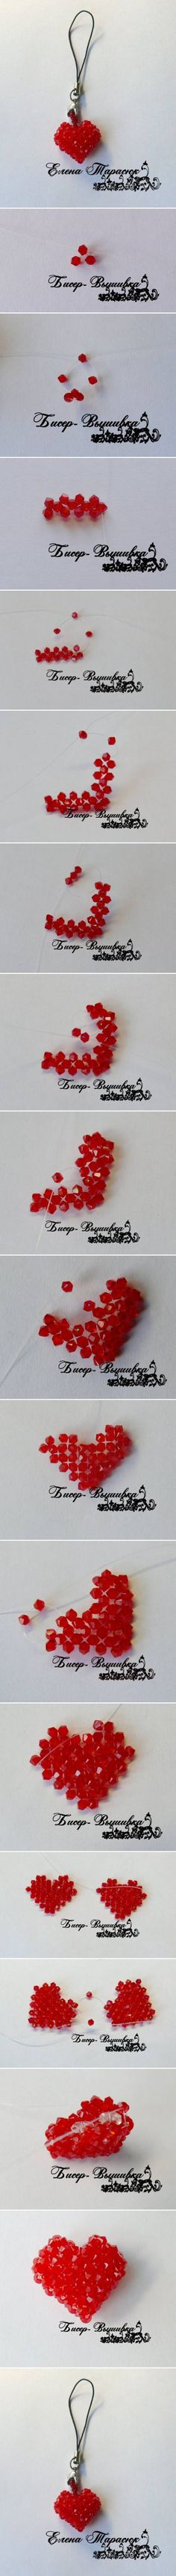 How to make beads or pearl Heart Ornament step by step DIY tutorial instructions 512x7484 How to make beads or pearl Heart Ornament step by ...